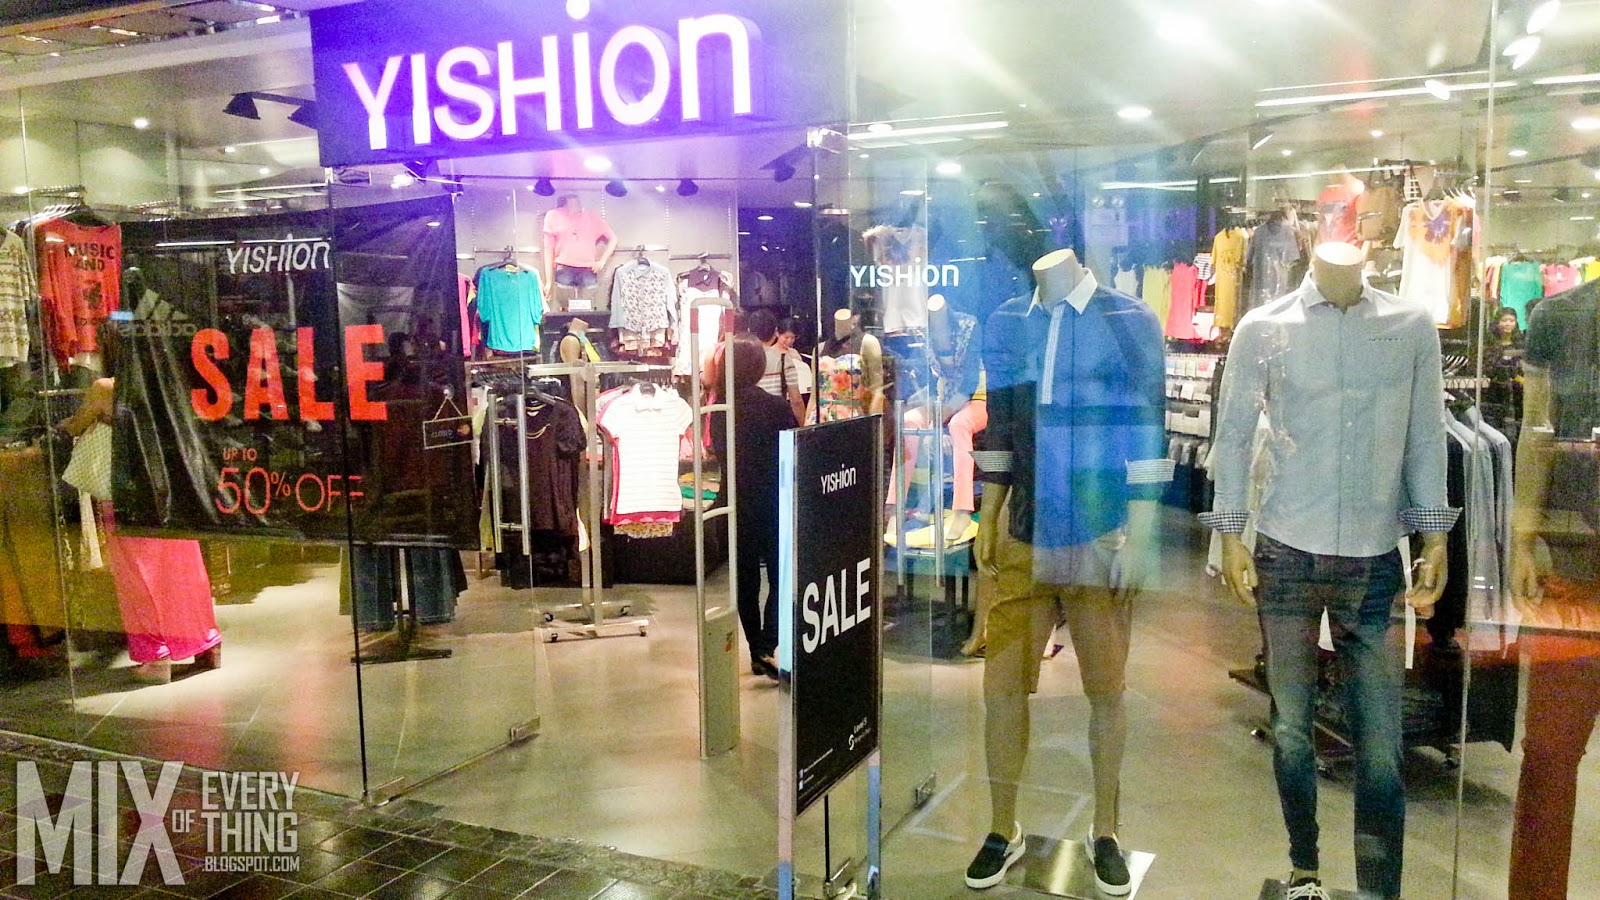 d6fe168687 I recently visited an apparel store at the 5th flr of Shangri-La Plaza